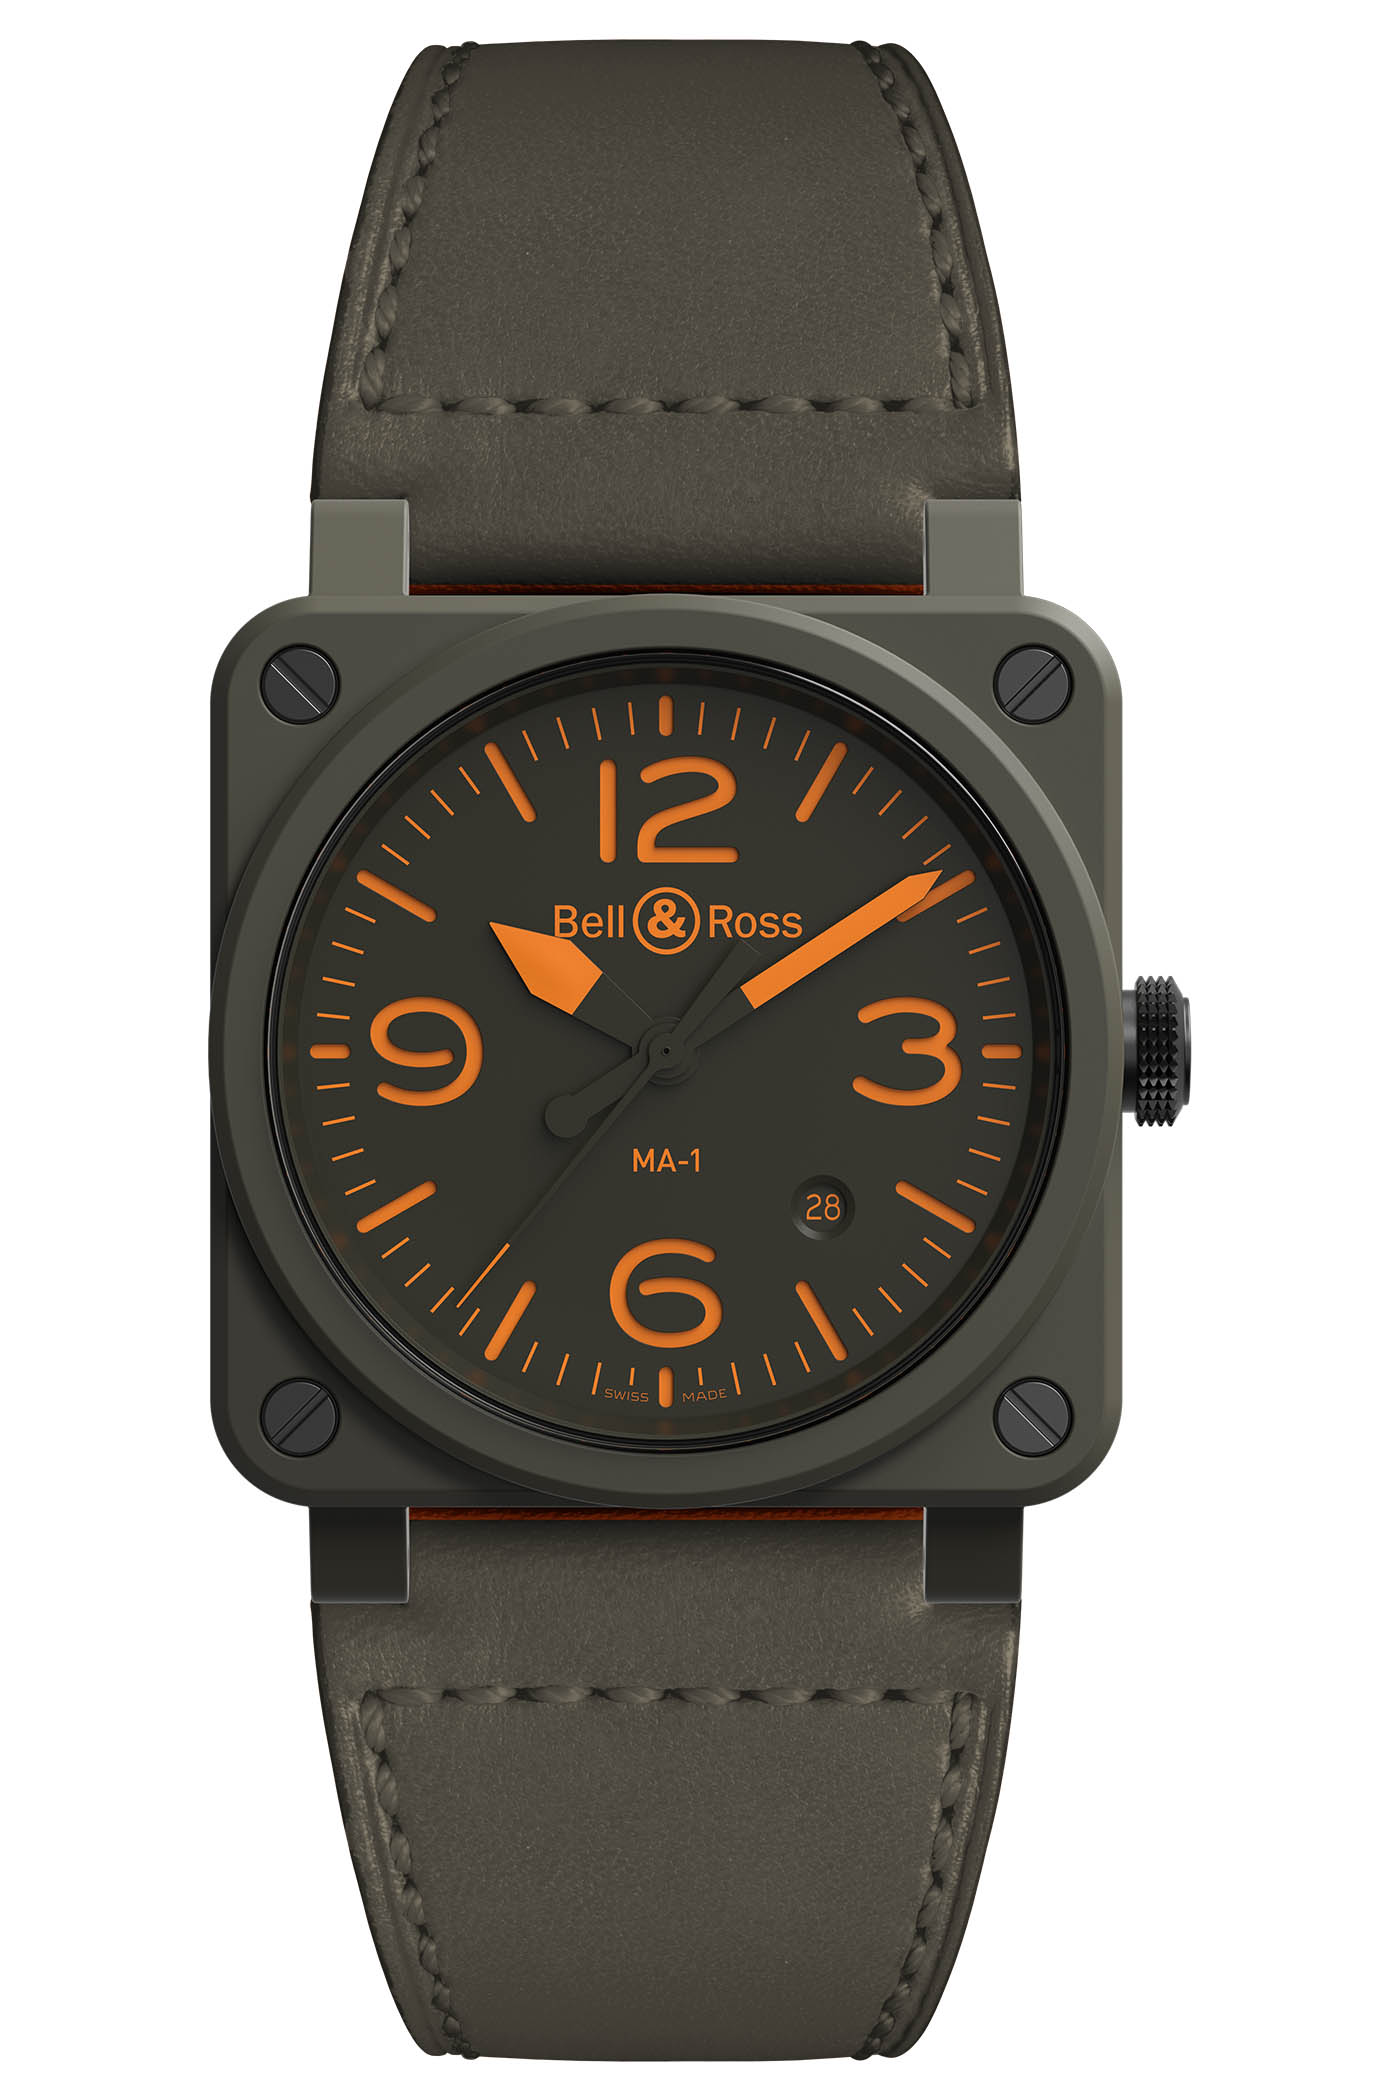 Baselworld 2019 - Bell & Ross BR 03-92 MA-1 - 7